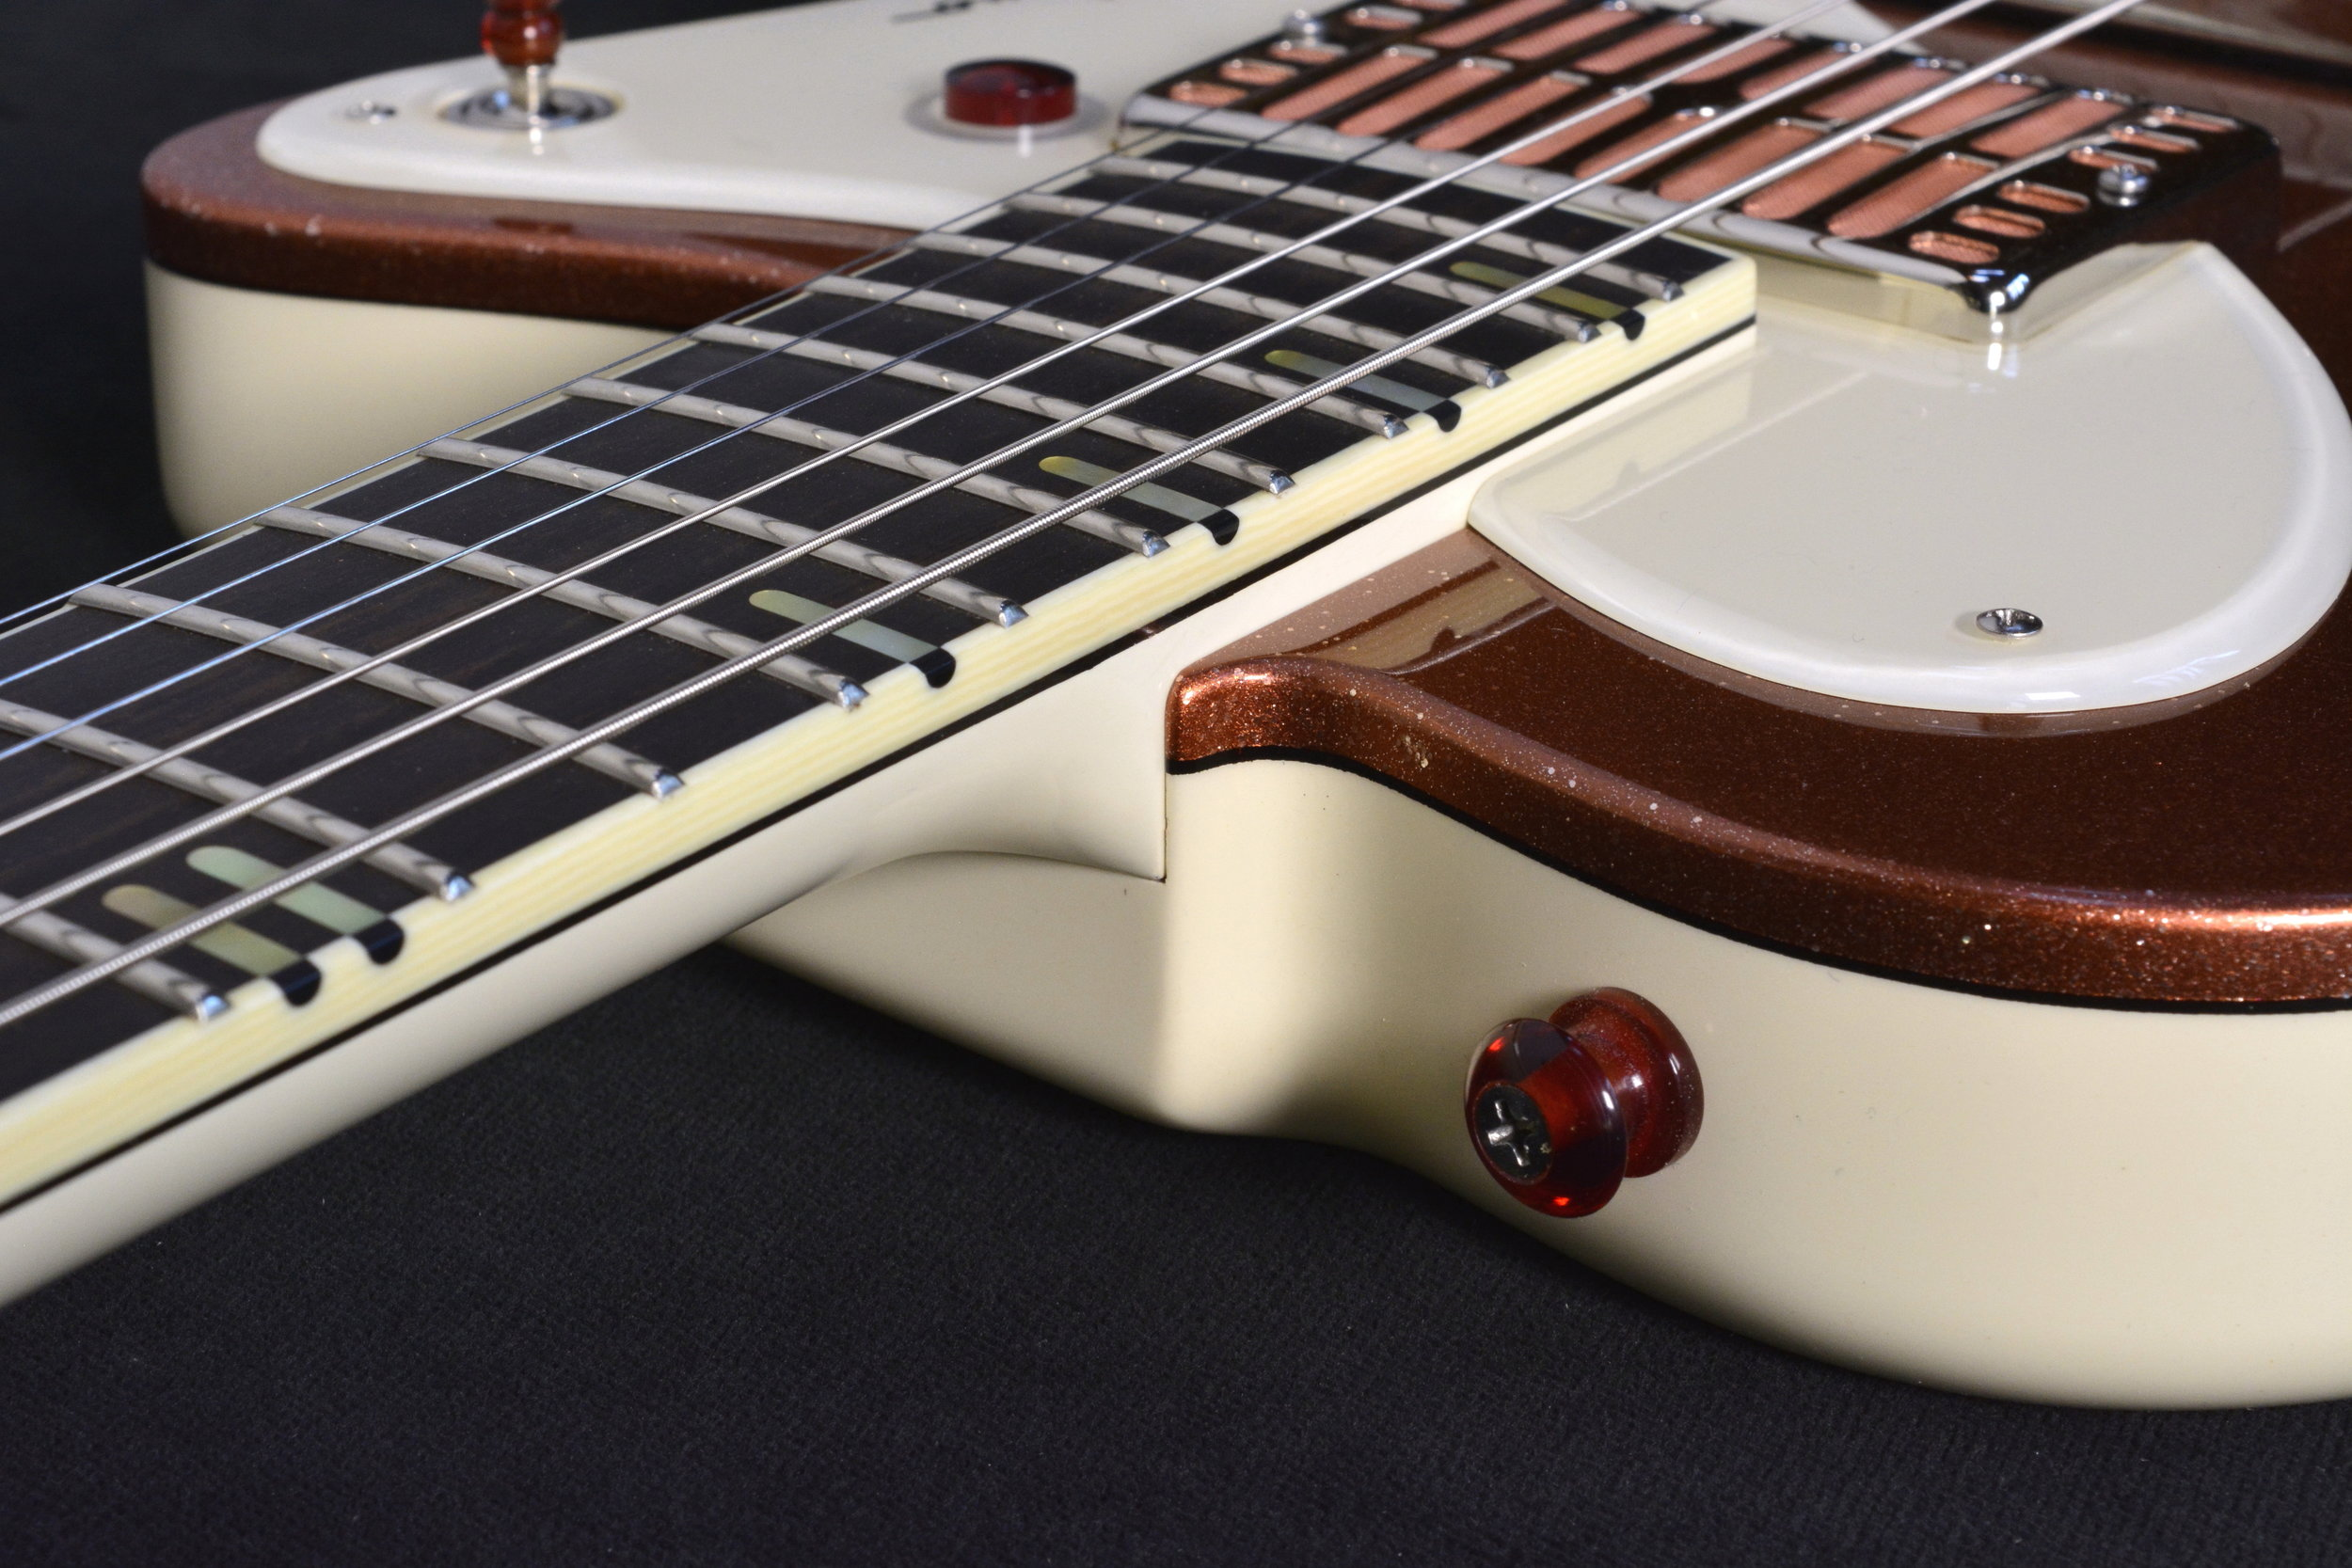 - The Milano is a limited edition of ten instruments. All ten will share the same specs, the difference between the instruments will be the lacquer finishes. Each in the series will have a different color sparkle top cap over either Jet Black back, sides and neck, or Mascarpone Cream as pictured on the copper top version.